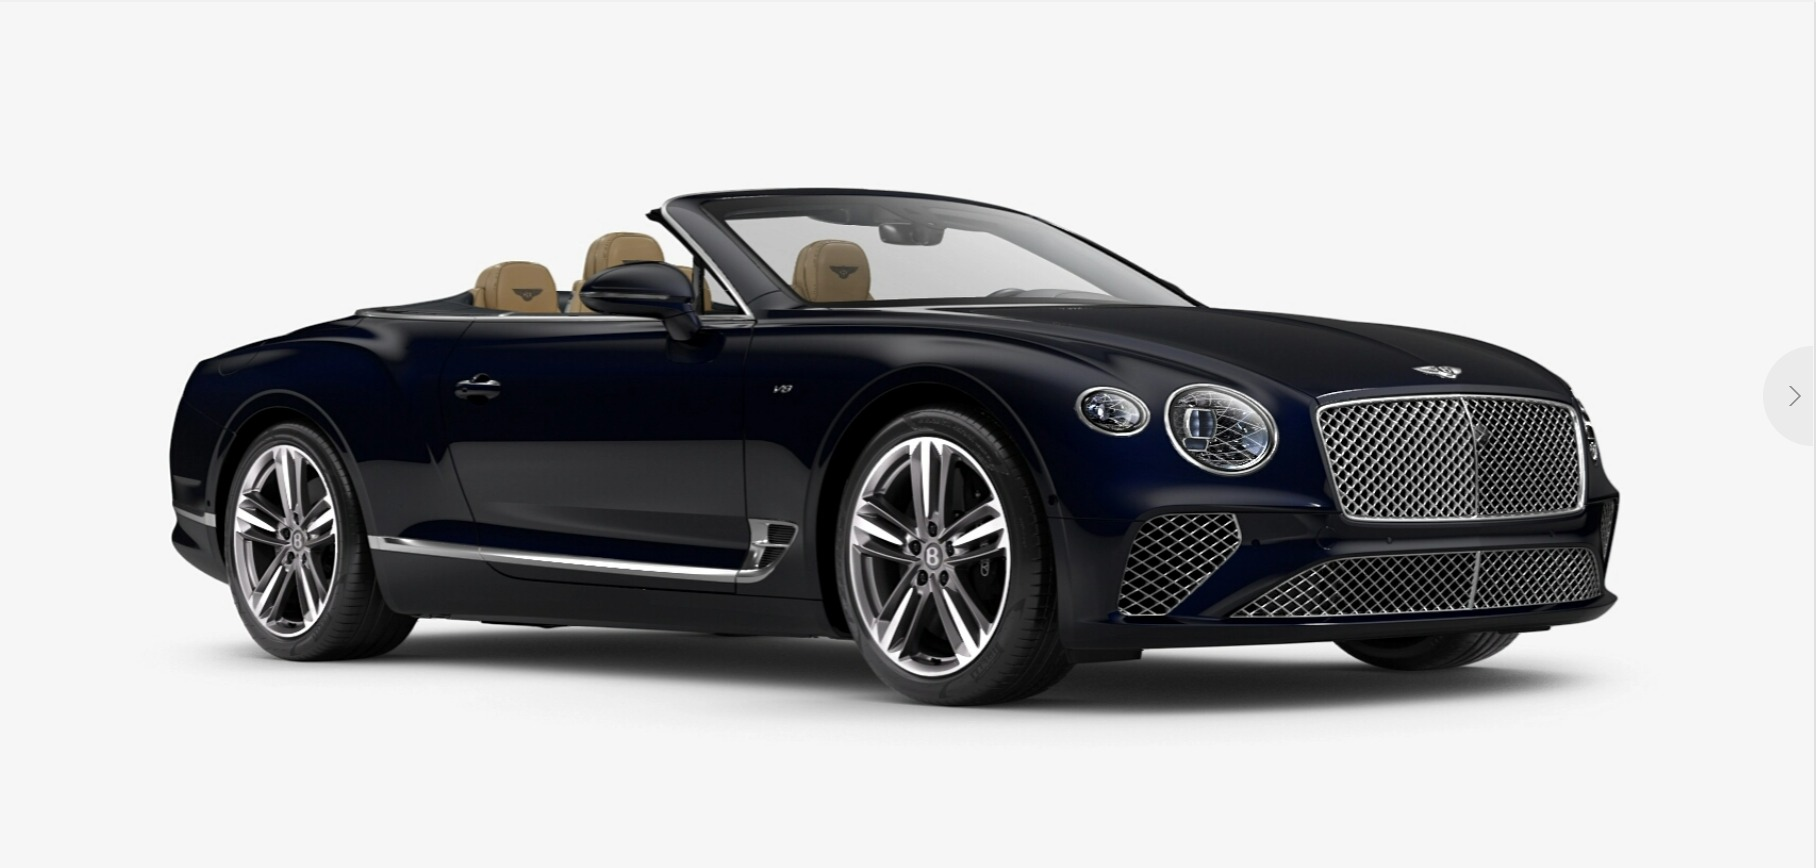 New 2021 Bentley Continental GT V8 Convertible for sale $251,650 at Bentley Palmyra N.J. in Palmyra NJ 08065 2